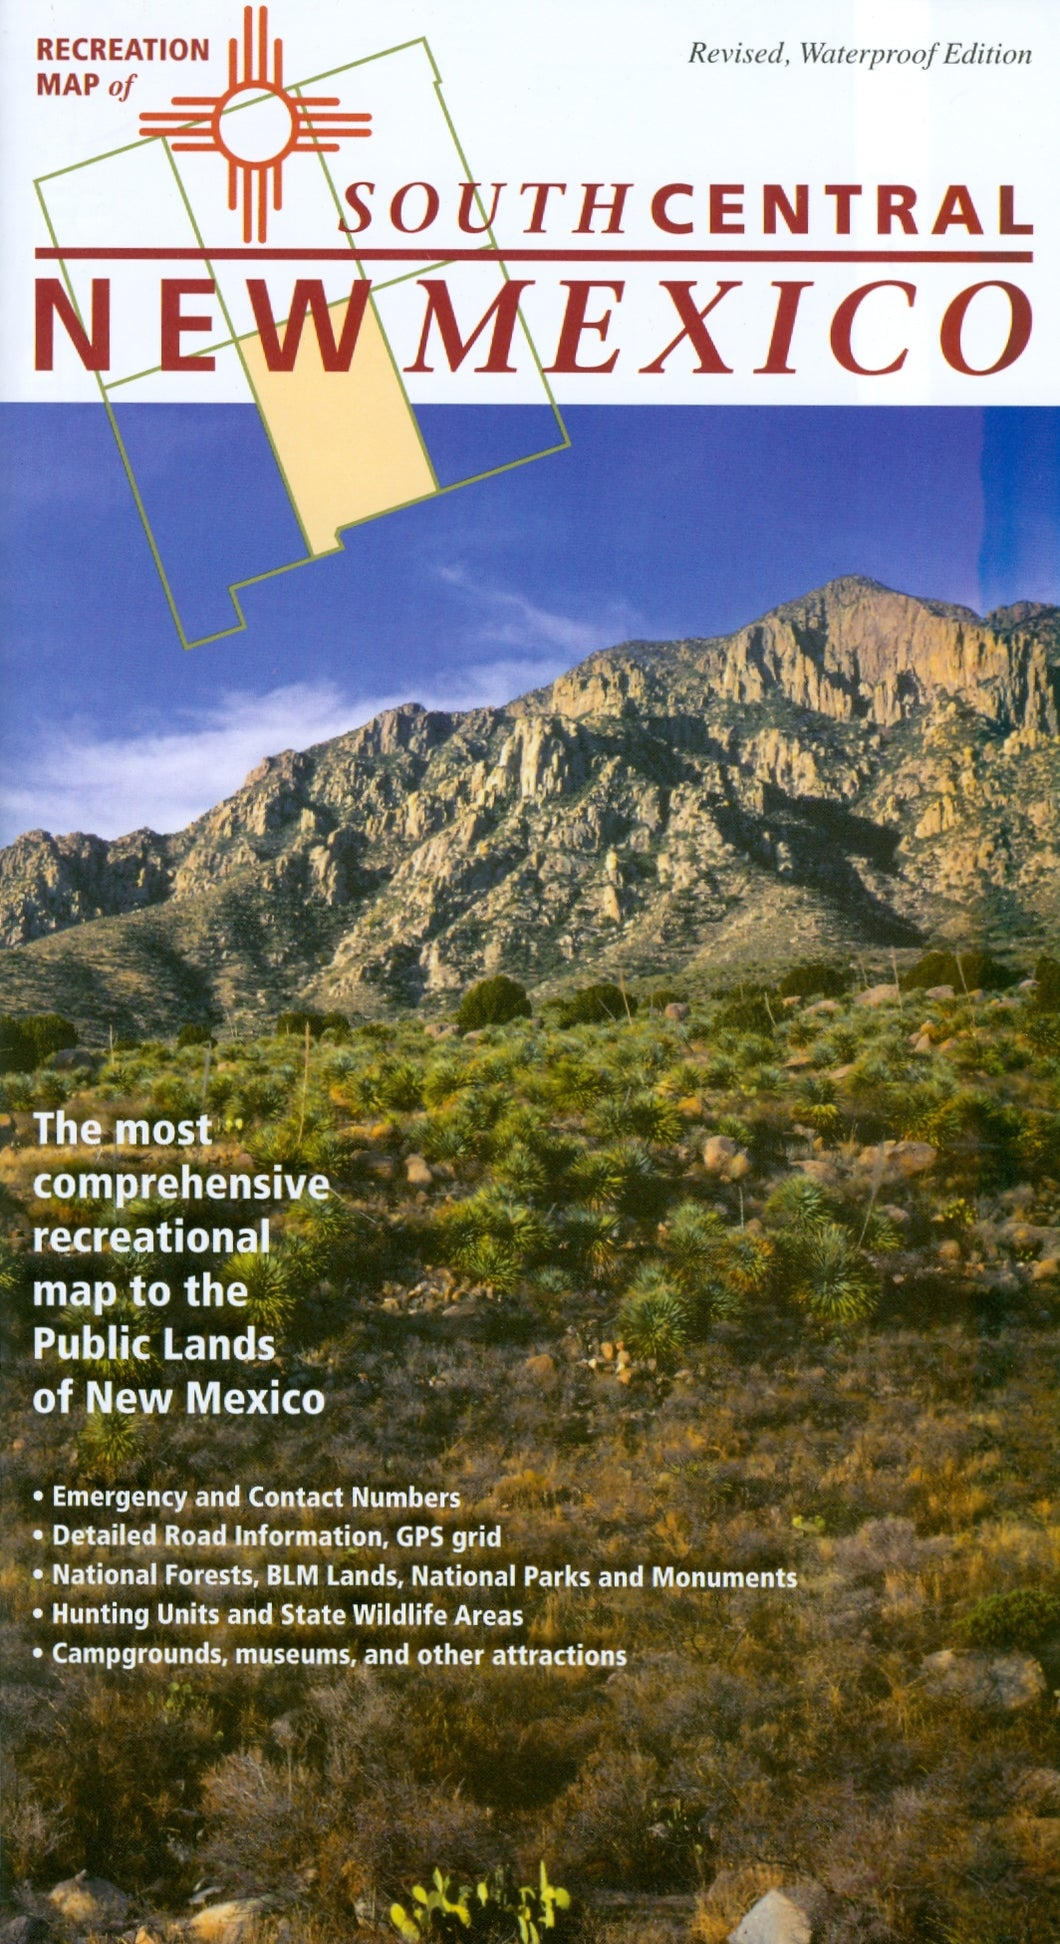 Map: New Mexico Recreation Southcentral